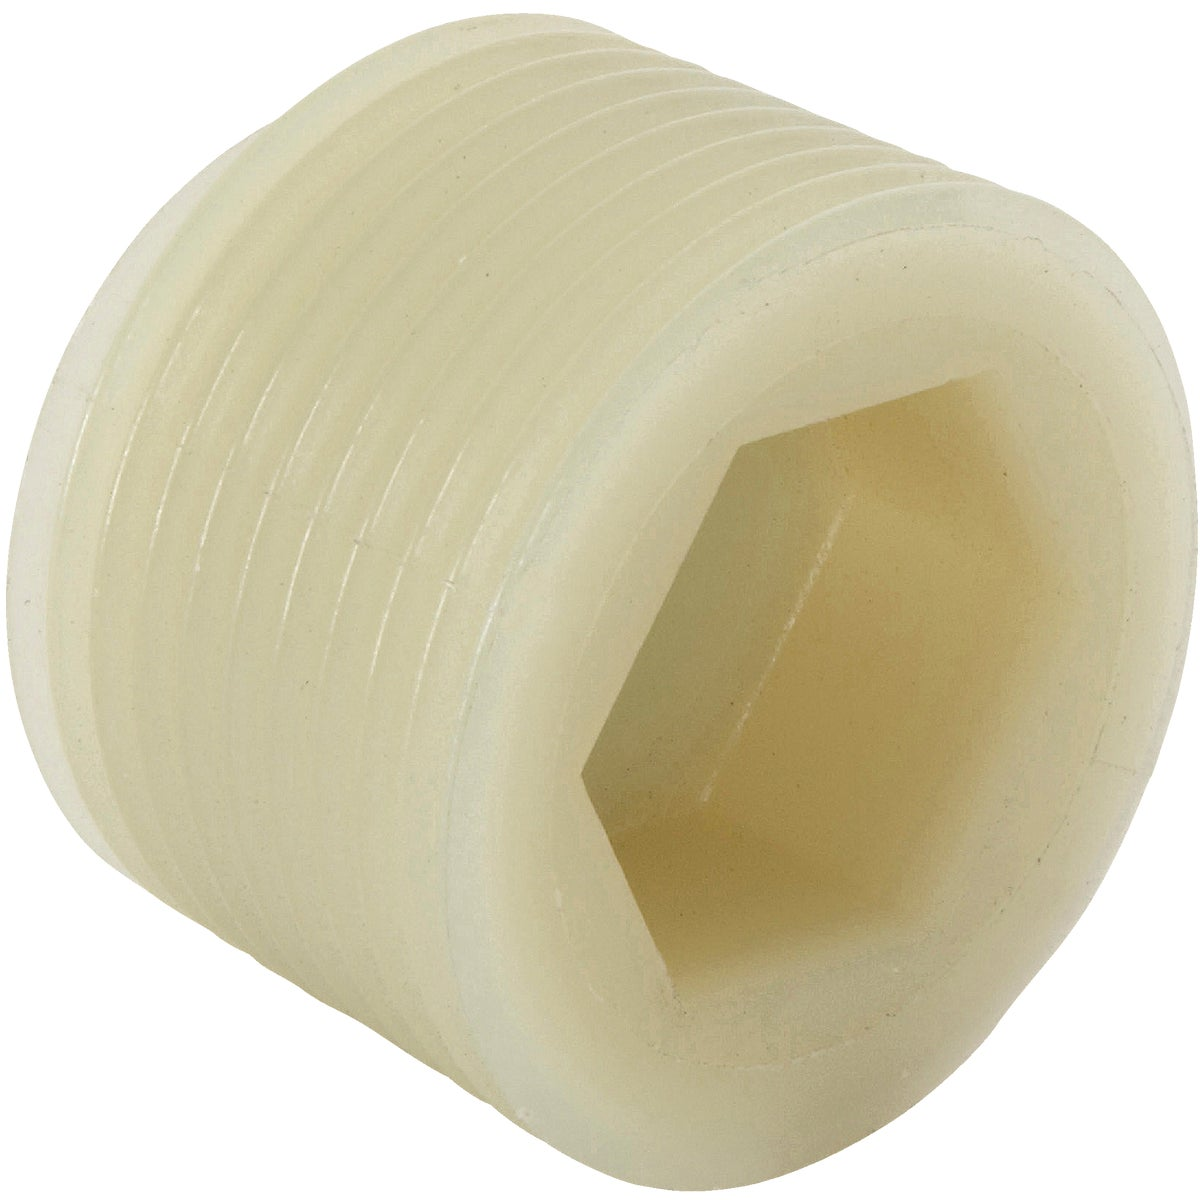 Item 703248, Replacement expansion plug for Precision Products steel lawn roller. Refer to Model No.